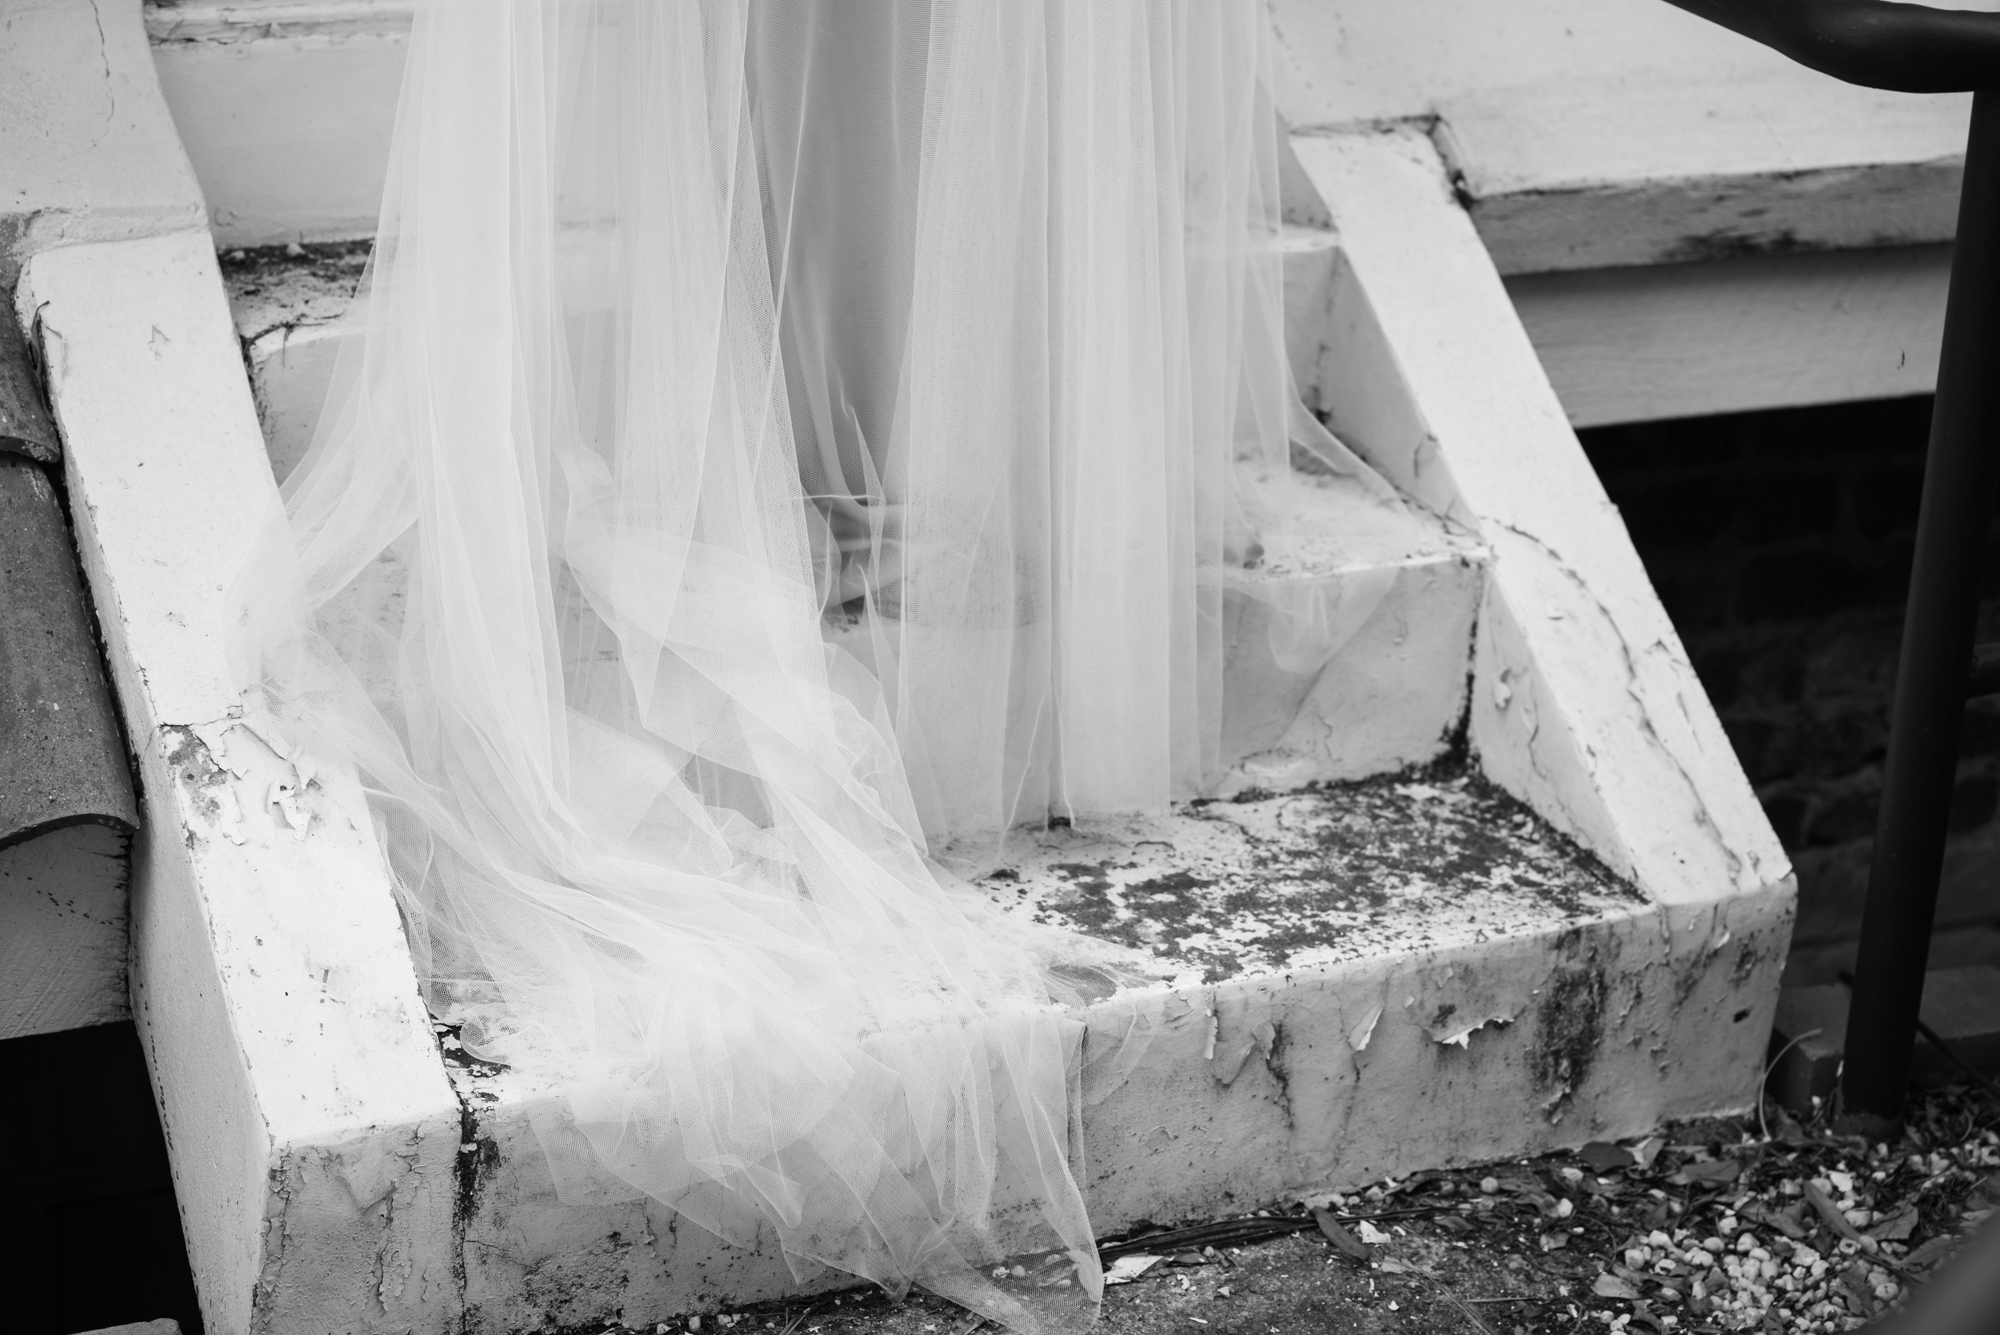 20170719 LOVELENSCAPES WEDDING PHOTOGRAPHY X MARIE MARRY ME WEDDING VIDEOGRAPHY X ANNA CAMPBELL CHLOE WEDDING GOWN ETERNAL HEART COLLECTION 2017  25.jpg